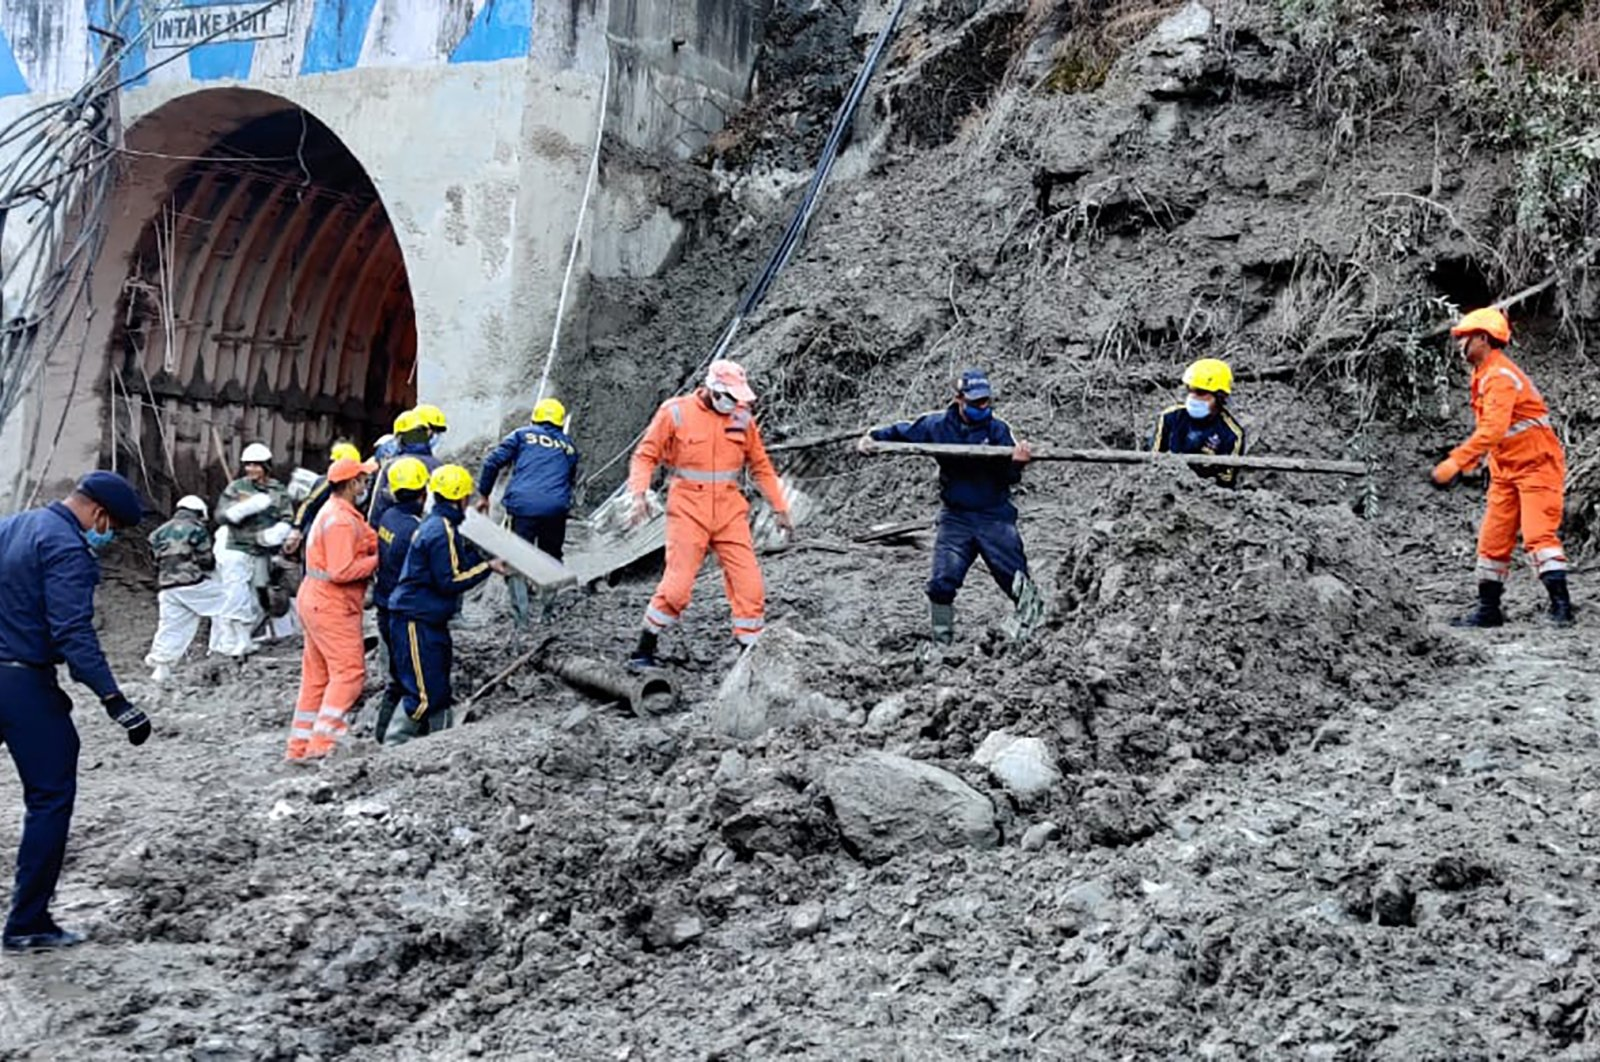 This photograph provided by National Disaster Response Force shows personnel preparing to rescue workers at one of the hydropower projects at Reni village in Chamoli district of the Indian state of Uttarakhand, Monday, Feb. 8, 2021.(National Disaster Response Force via AP)